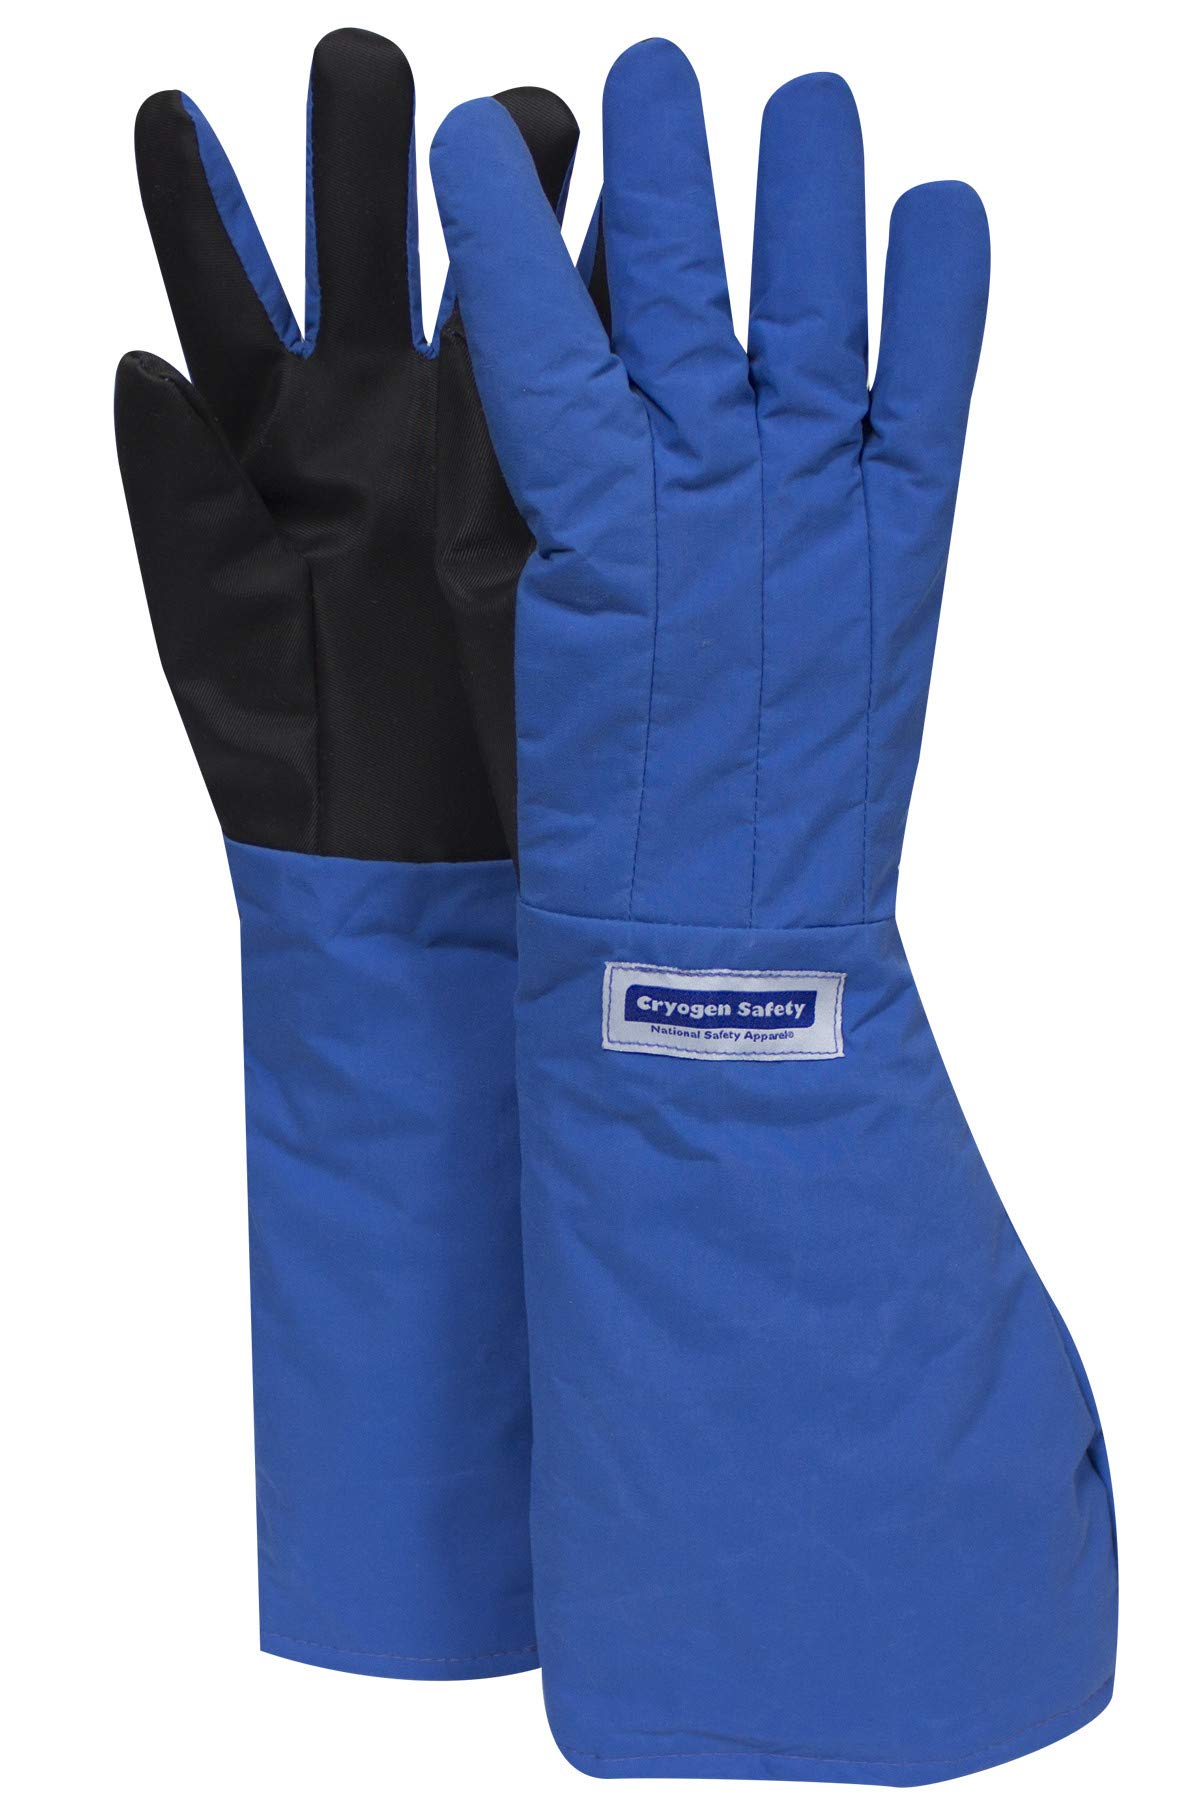 National Safety Apparel G99CRSGPMDEL Nylon Taslan and PTFE Elbow Waterproof Safety Glove with SaferGrip Palm, Cryogenic, 17'' - 18'' Length, Medium, Blue